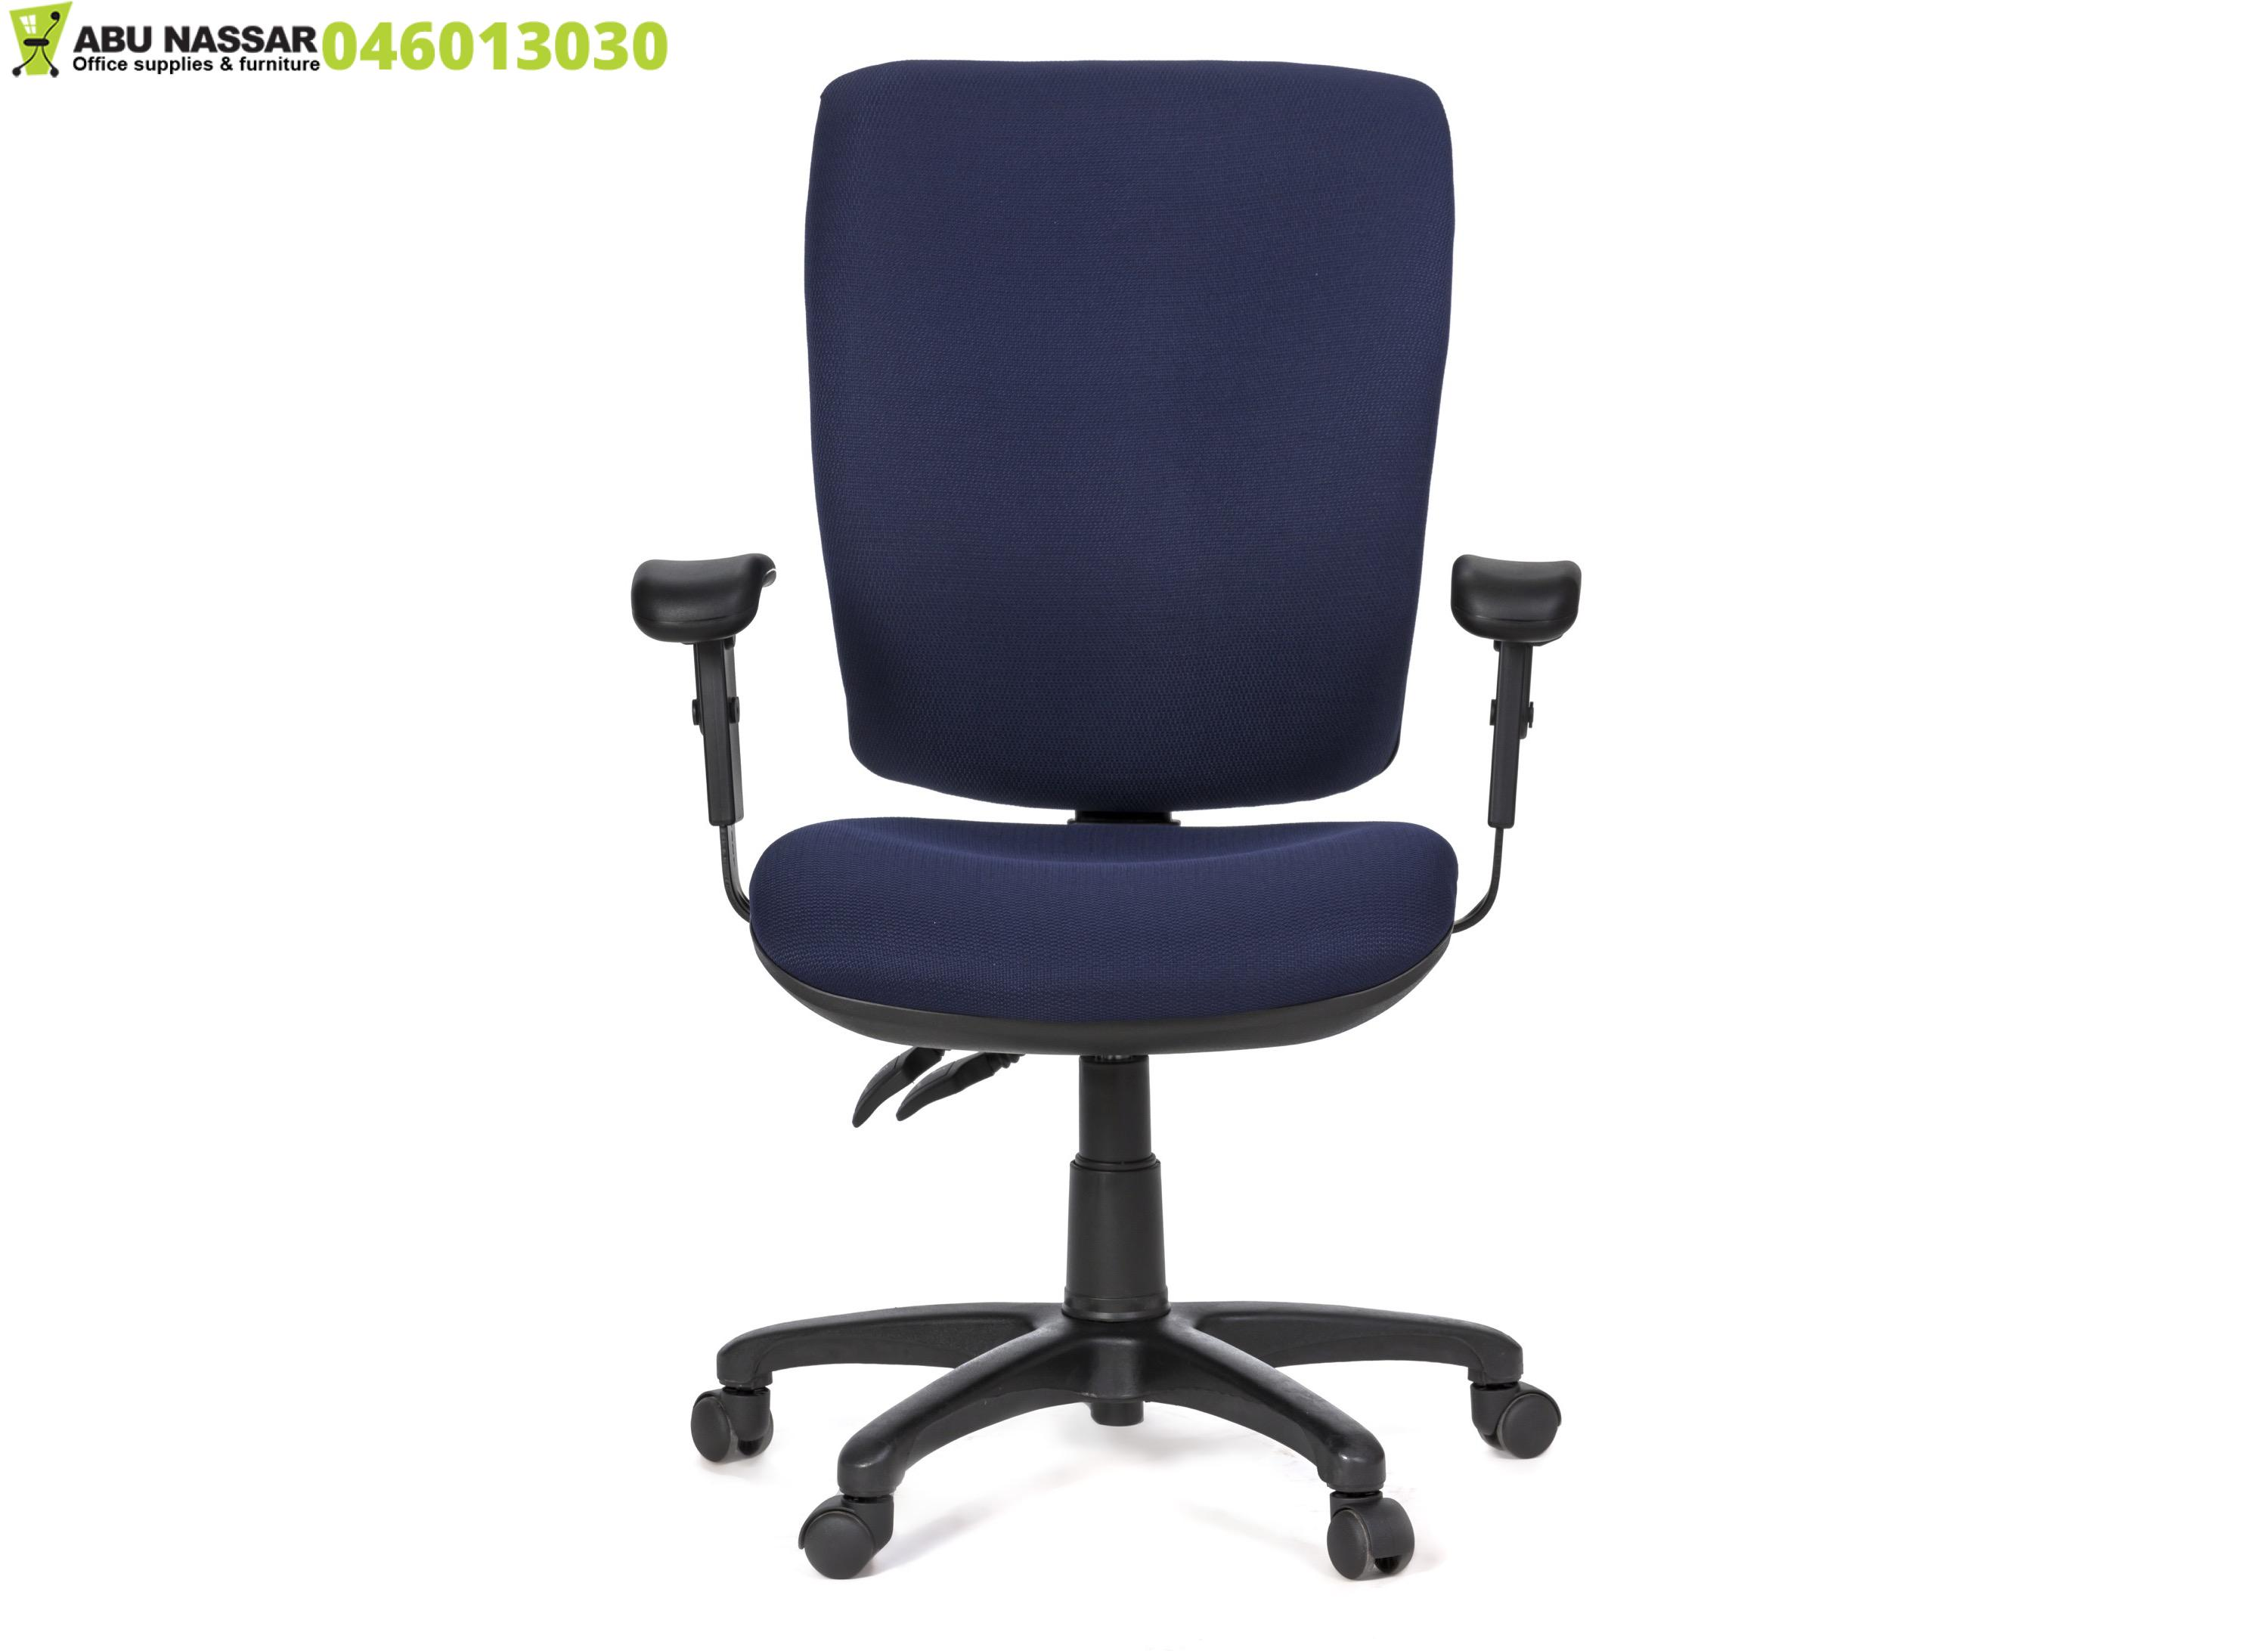 Work Chair ריהוט משרדי בצפון Work Chair Yellow Abu Nassar Office Supplies